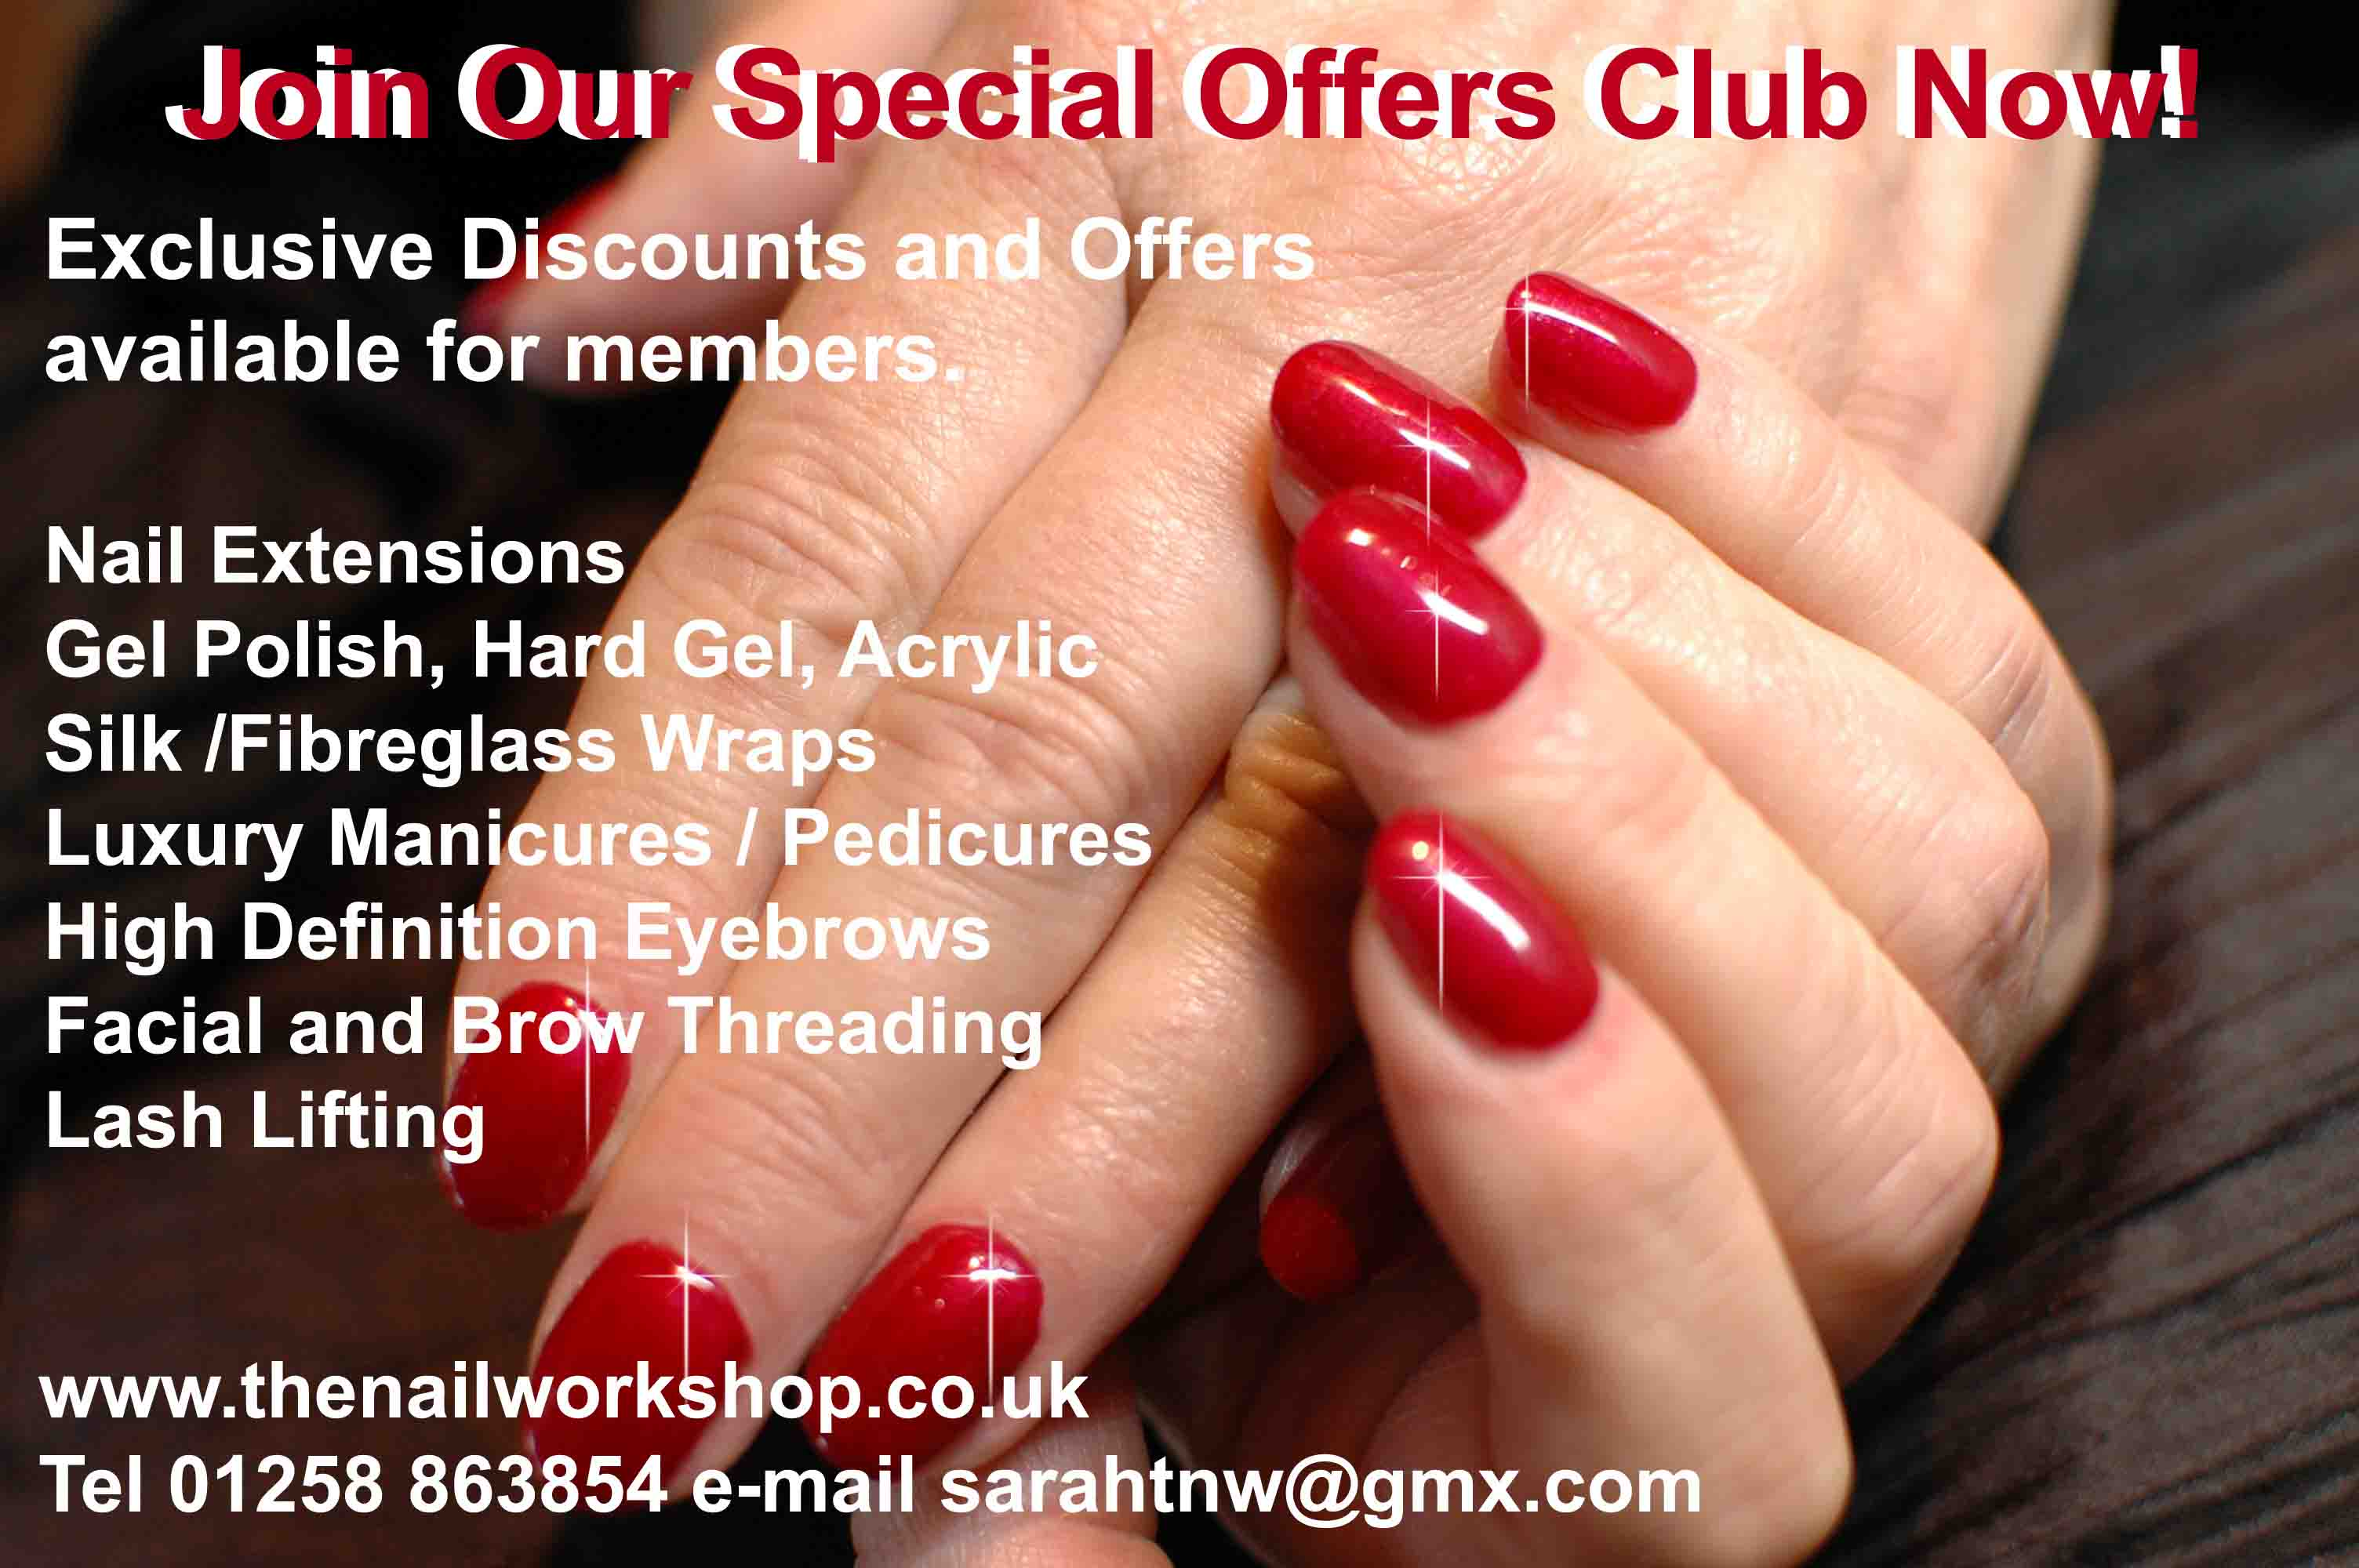 The Nail Workshop Special Offers Club